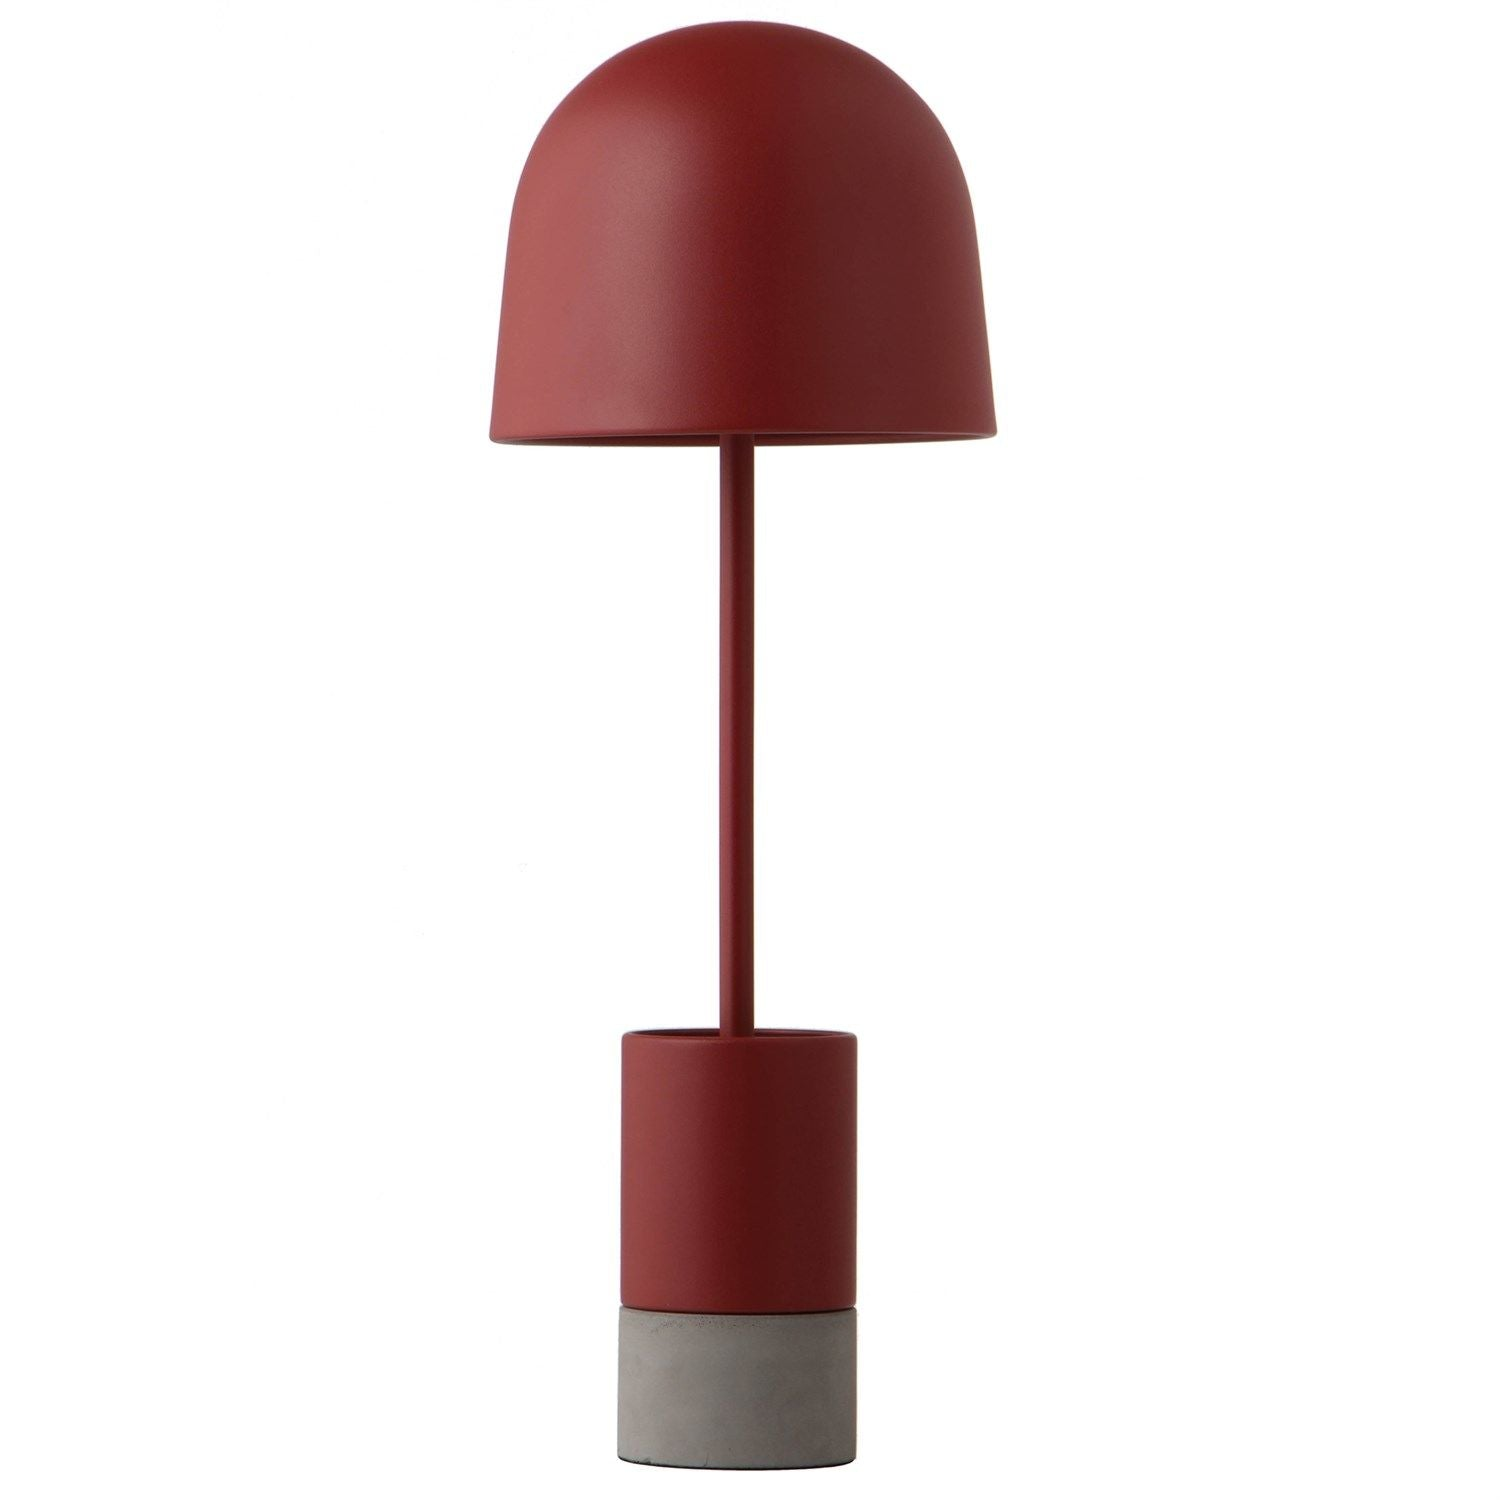 Frandsen Pen Bordlampe